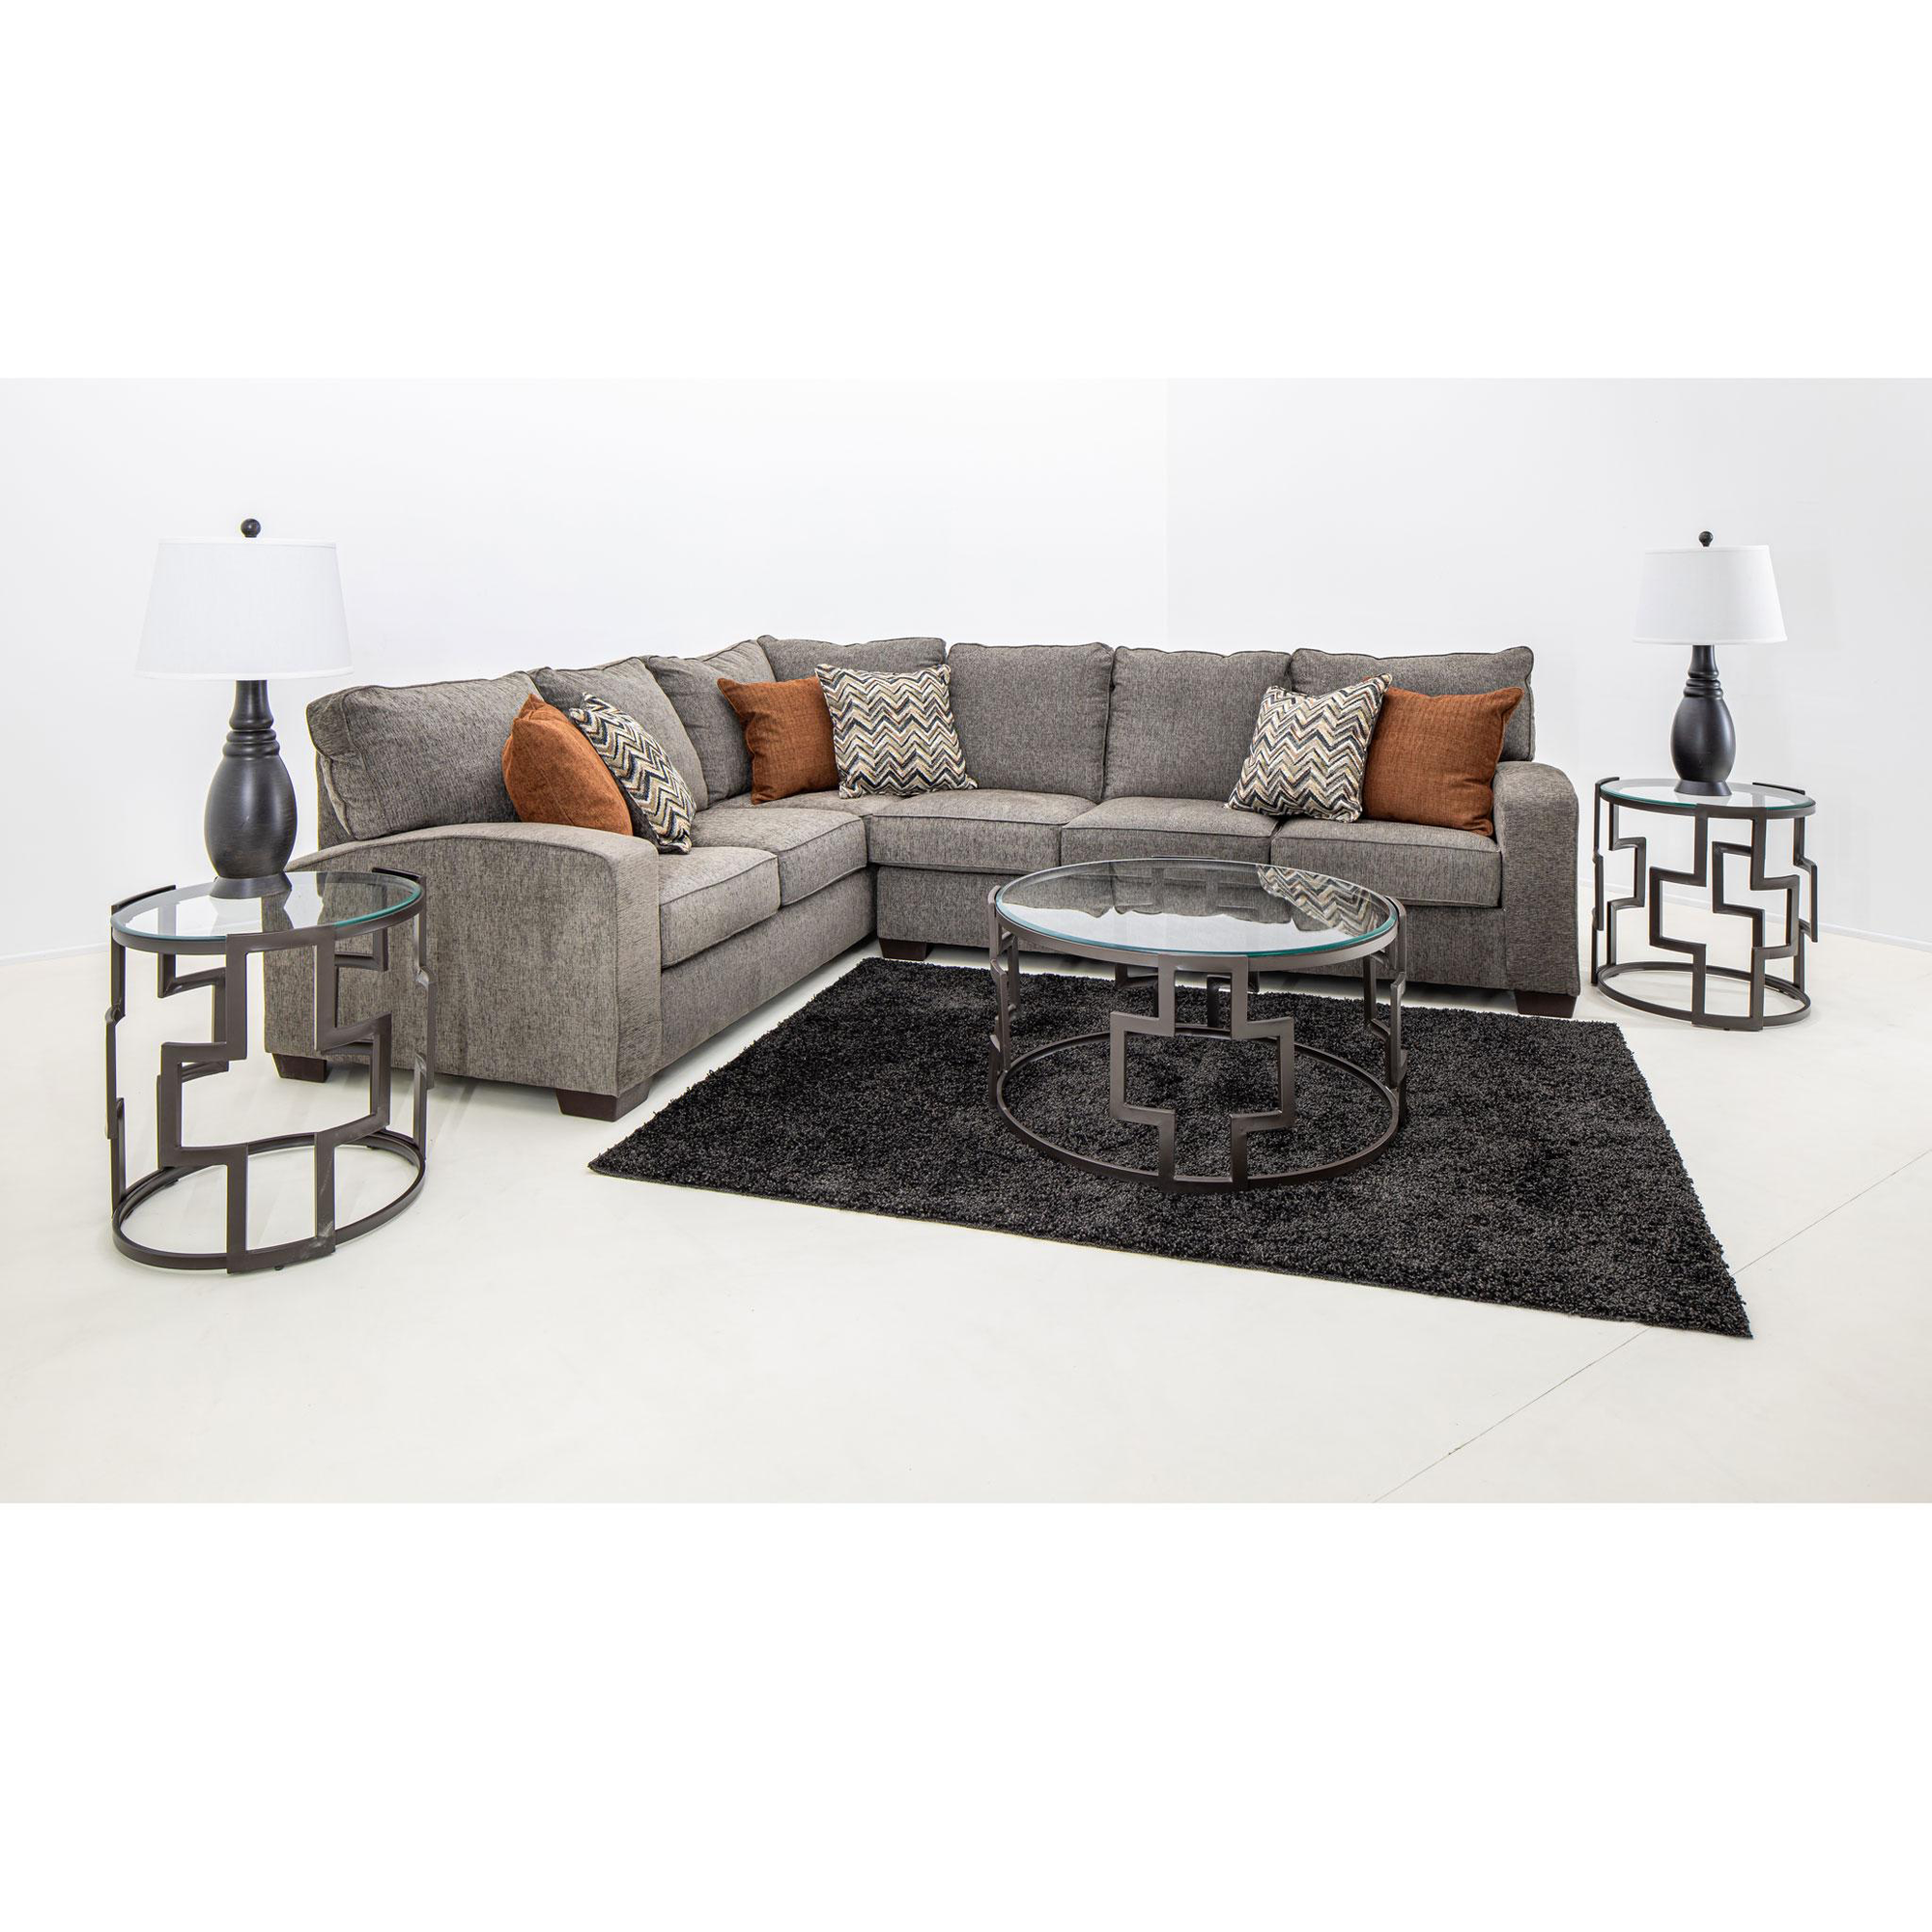 Endurance Sectional Living Room Group